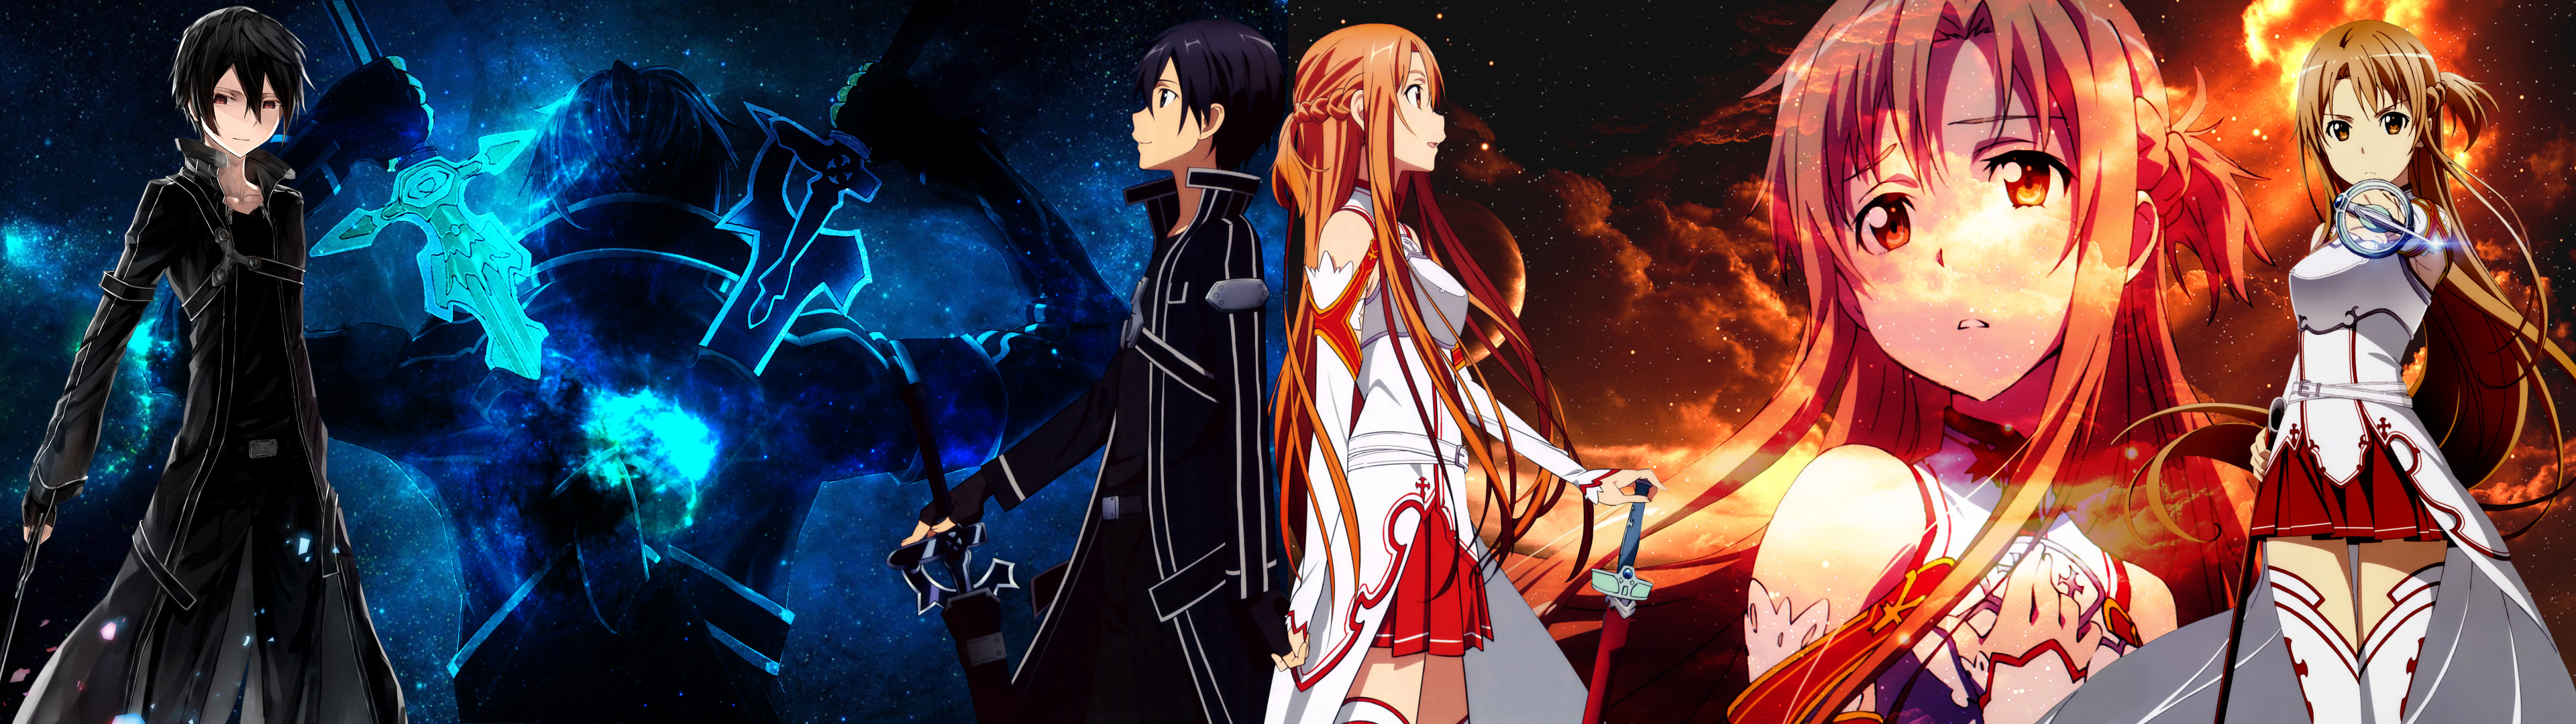 1920x1080 Sword Art Online Asuna Fighting